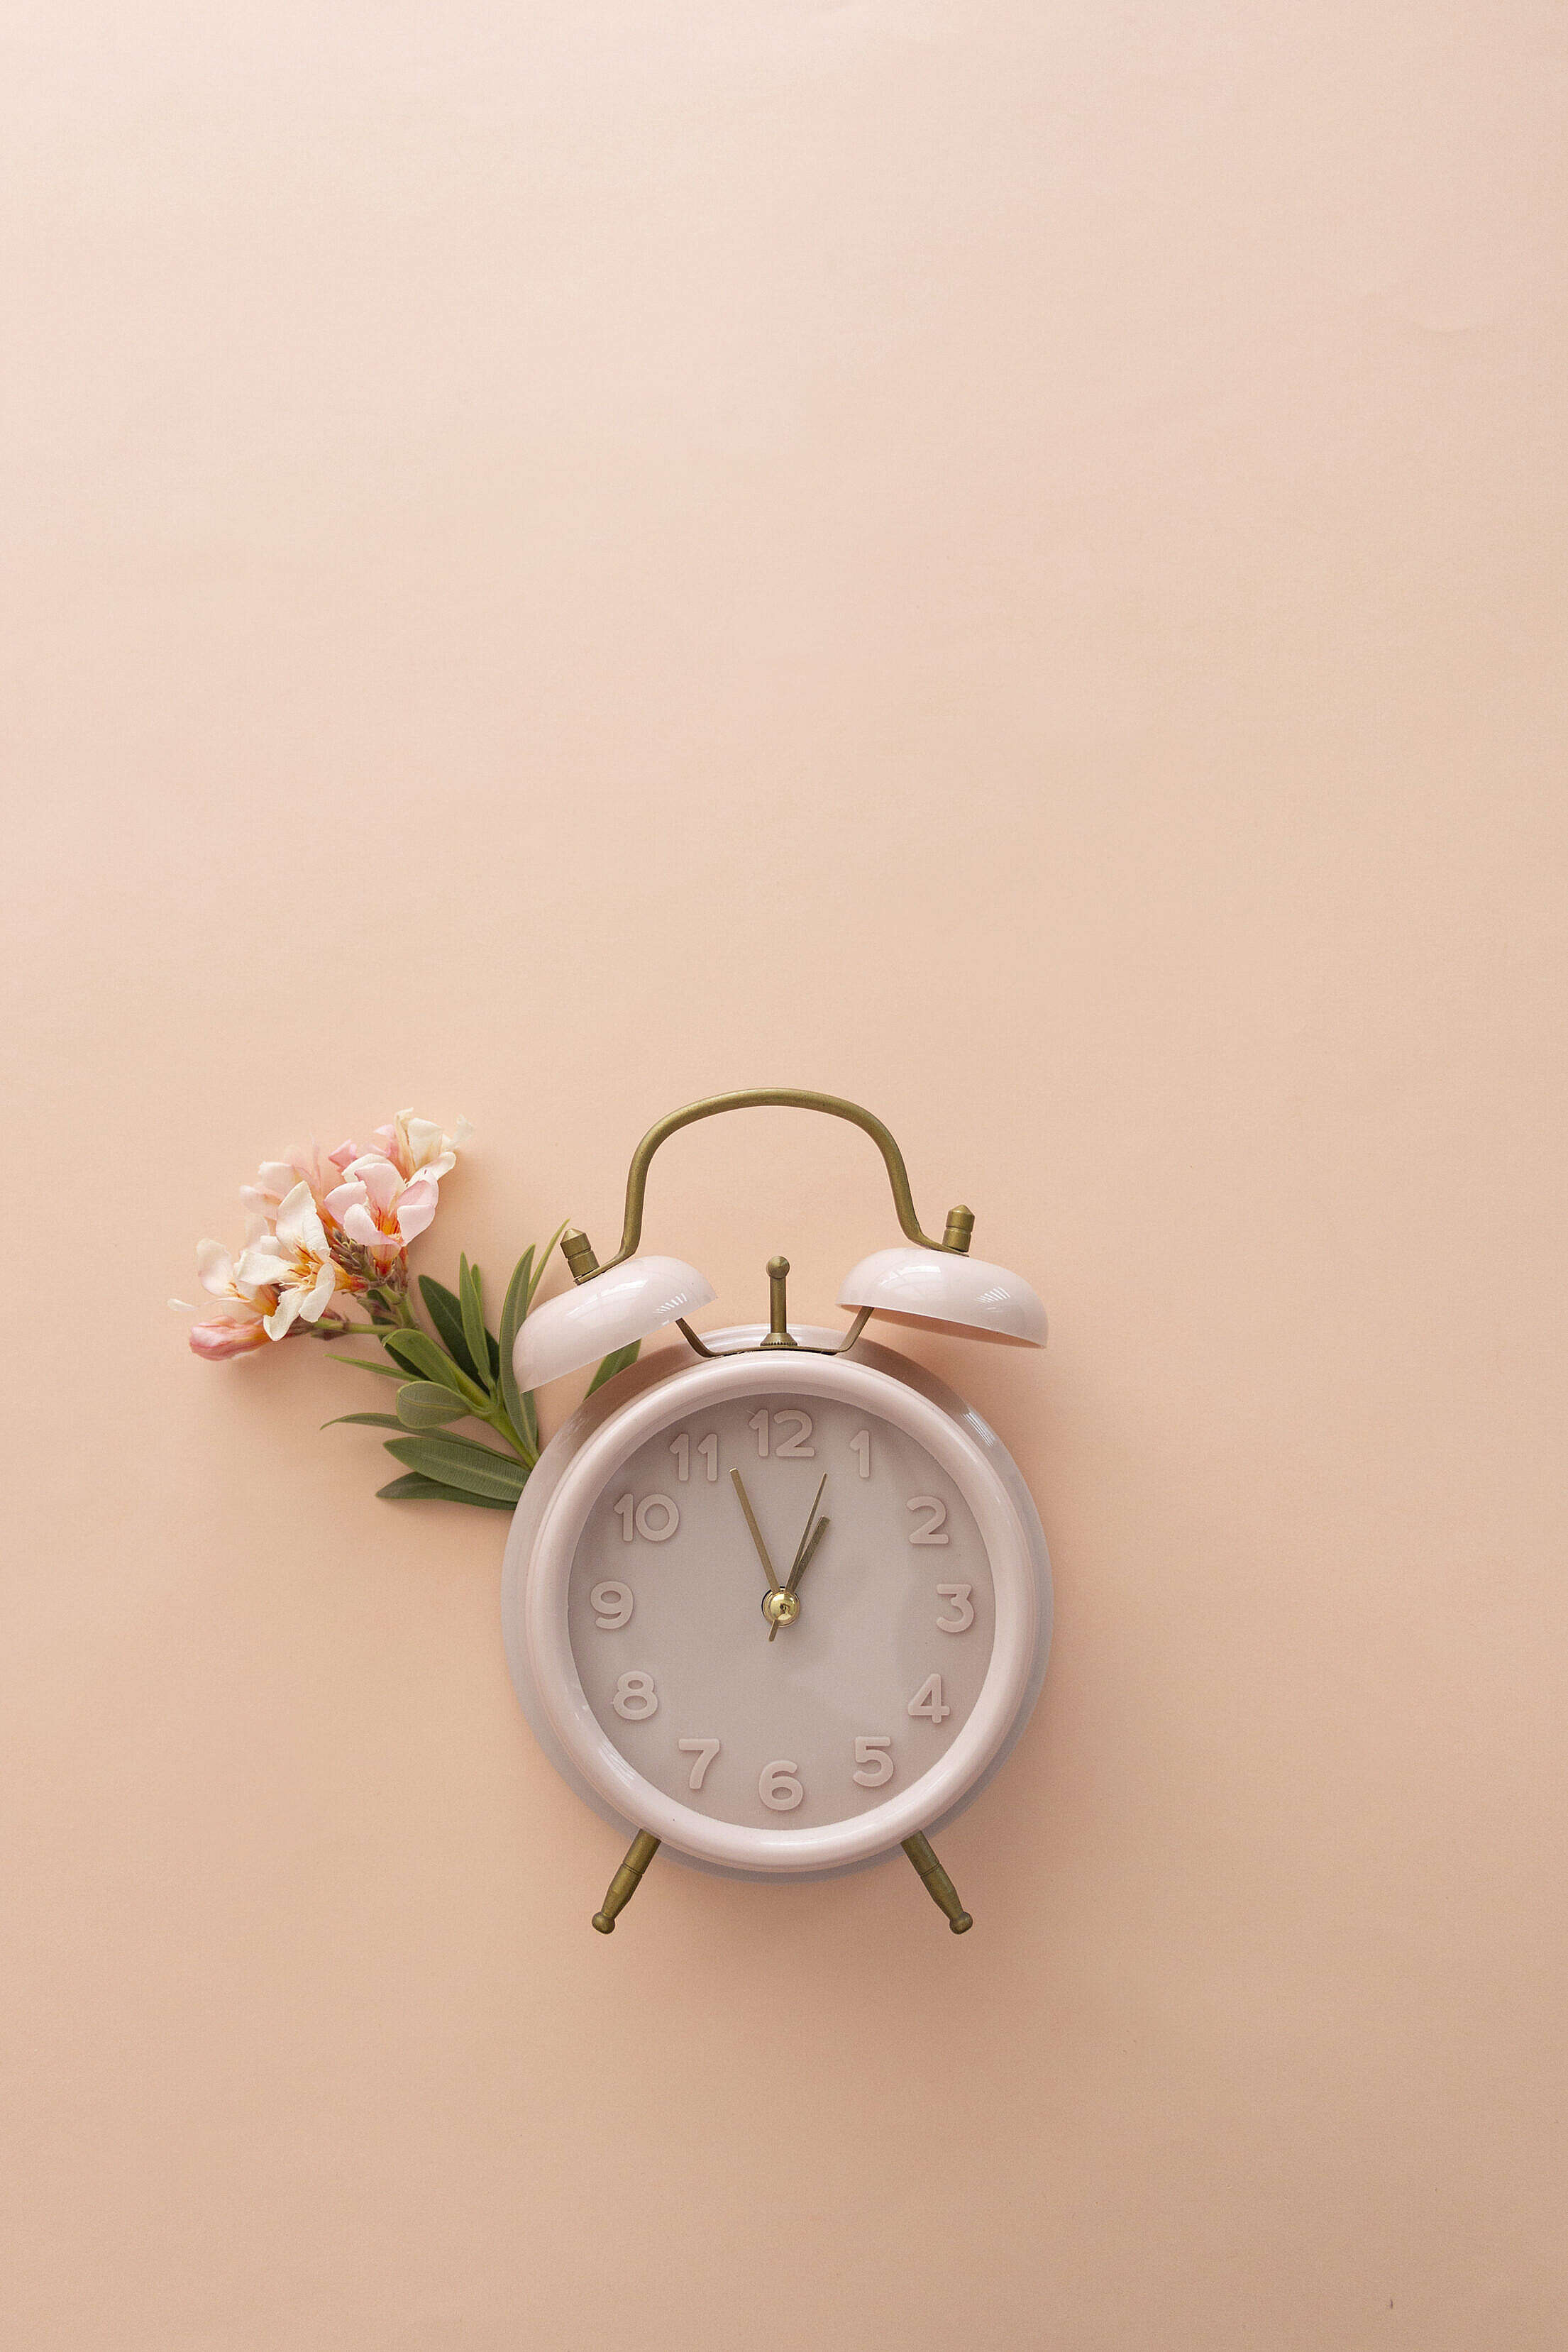 Retro Clock with Flower on Pastel Background Free Stock Photo